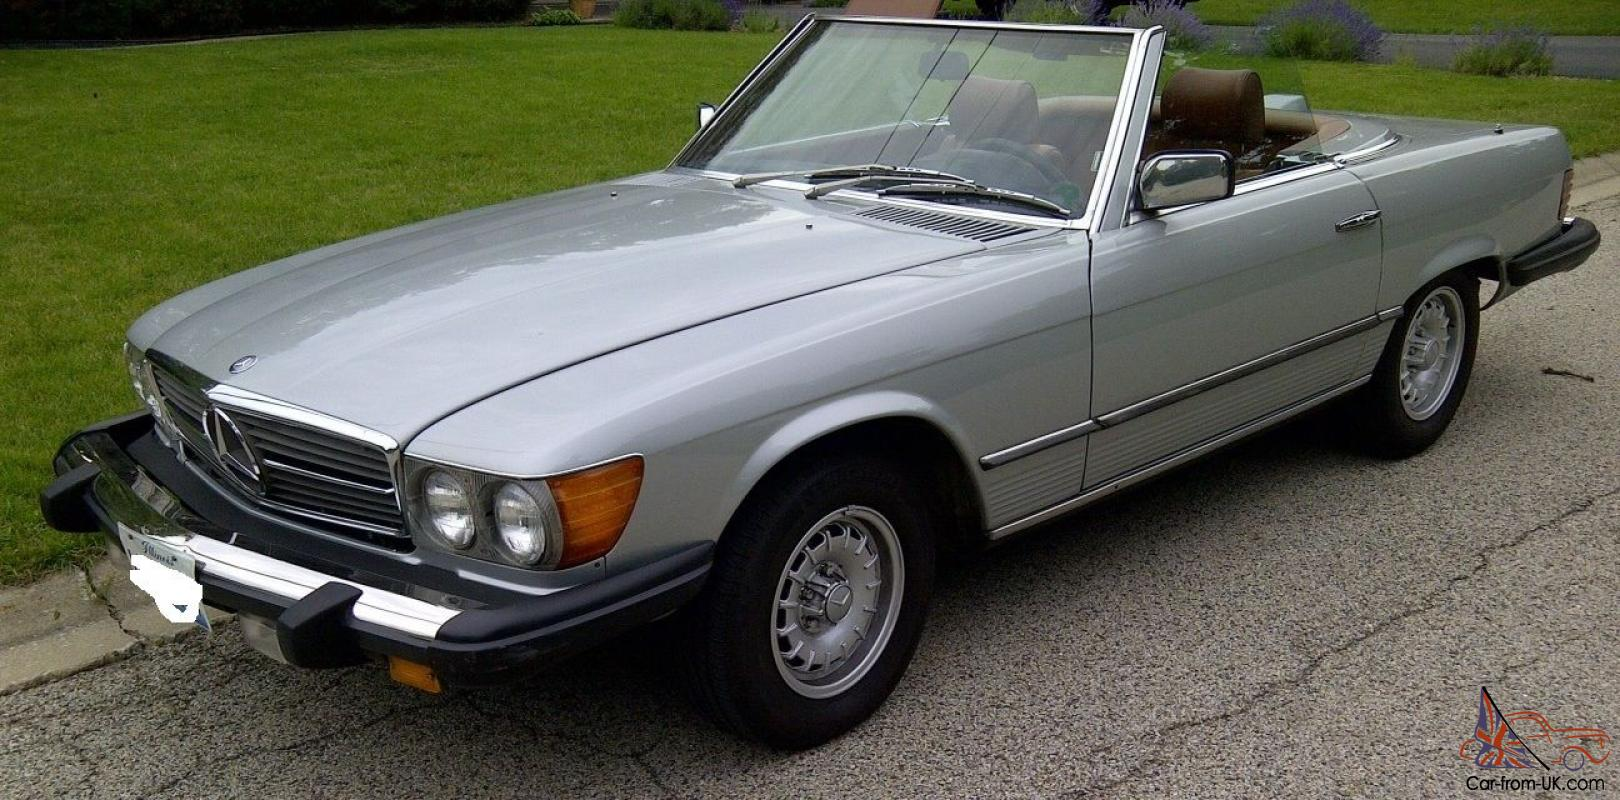 1980 silver mercedes benz 450 sl nice. Black Bedroom Furniture Sets. Home Design Ideas